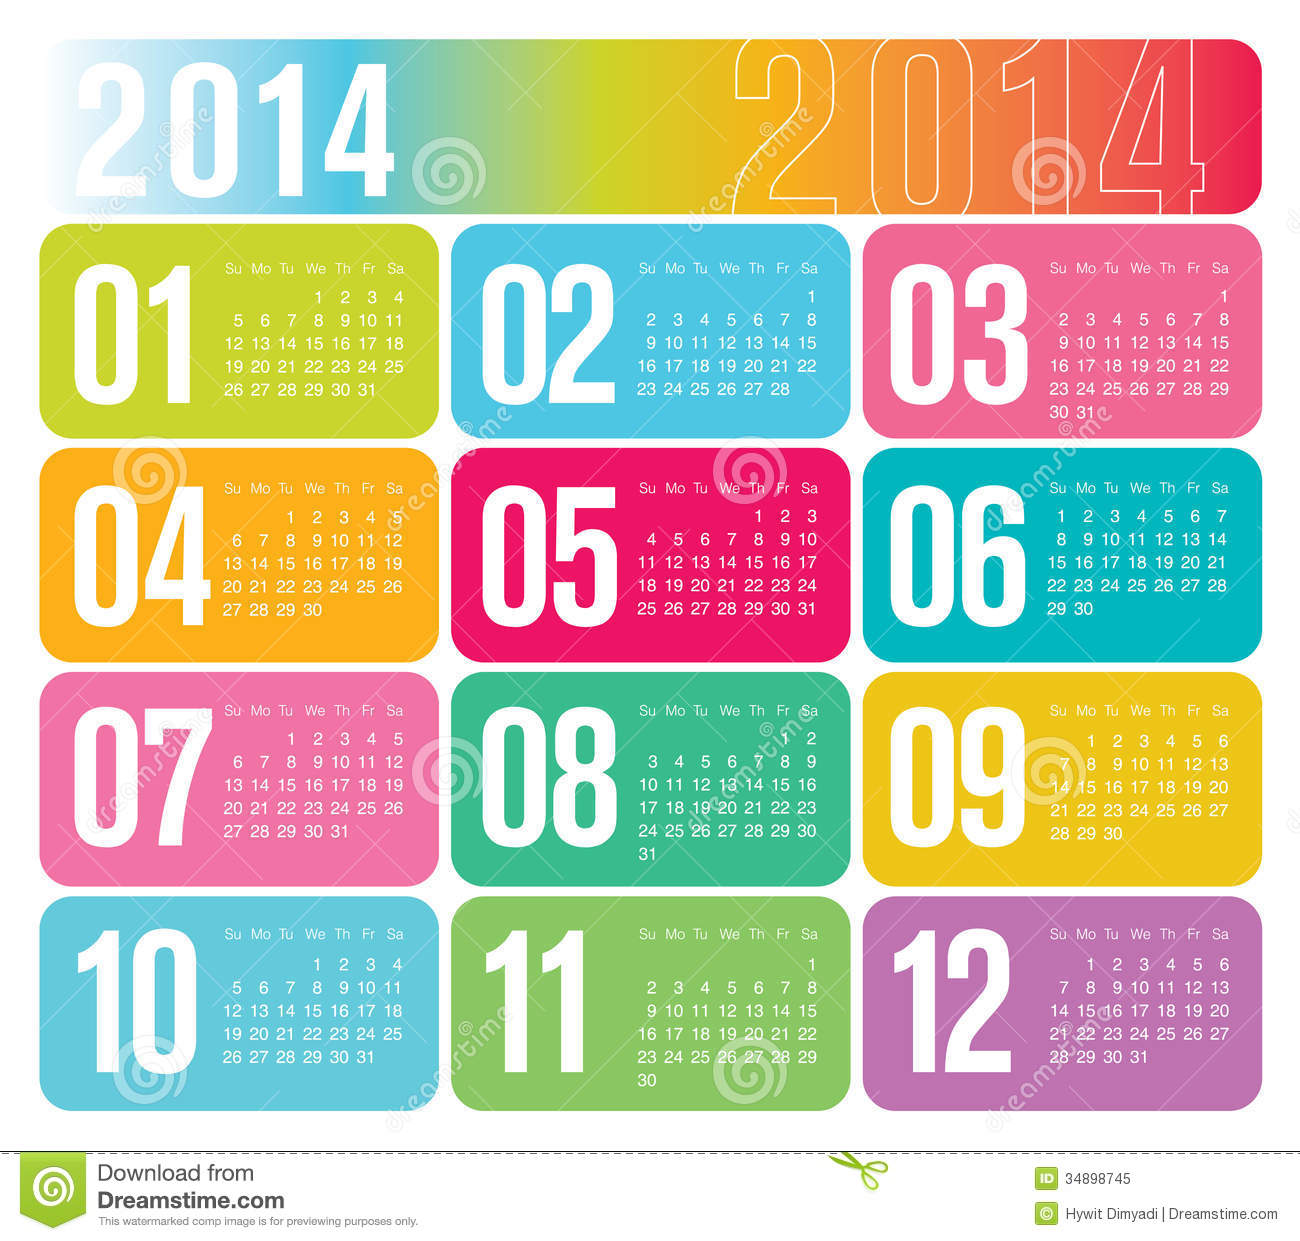 Calendar Illustration Template : Yearly calendar stock vector image of office